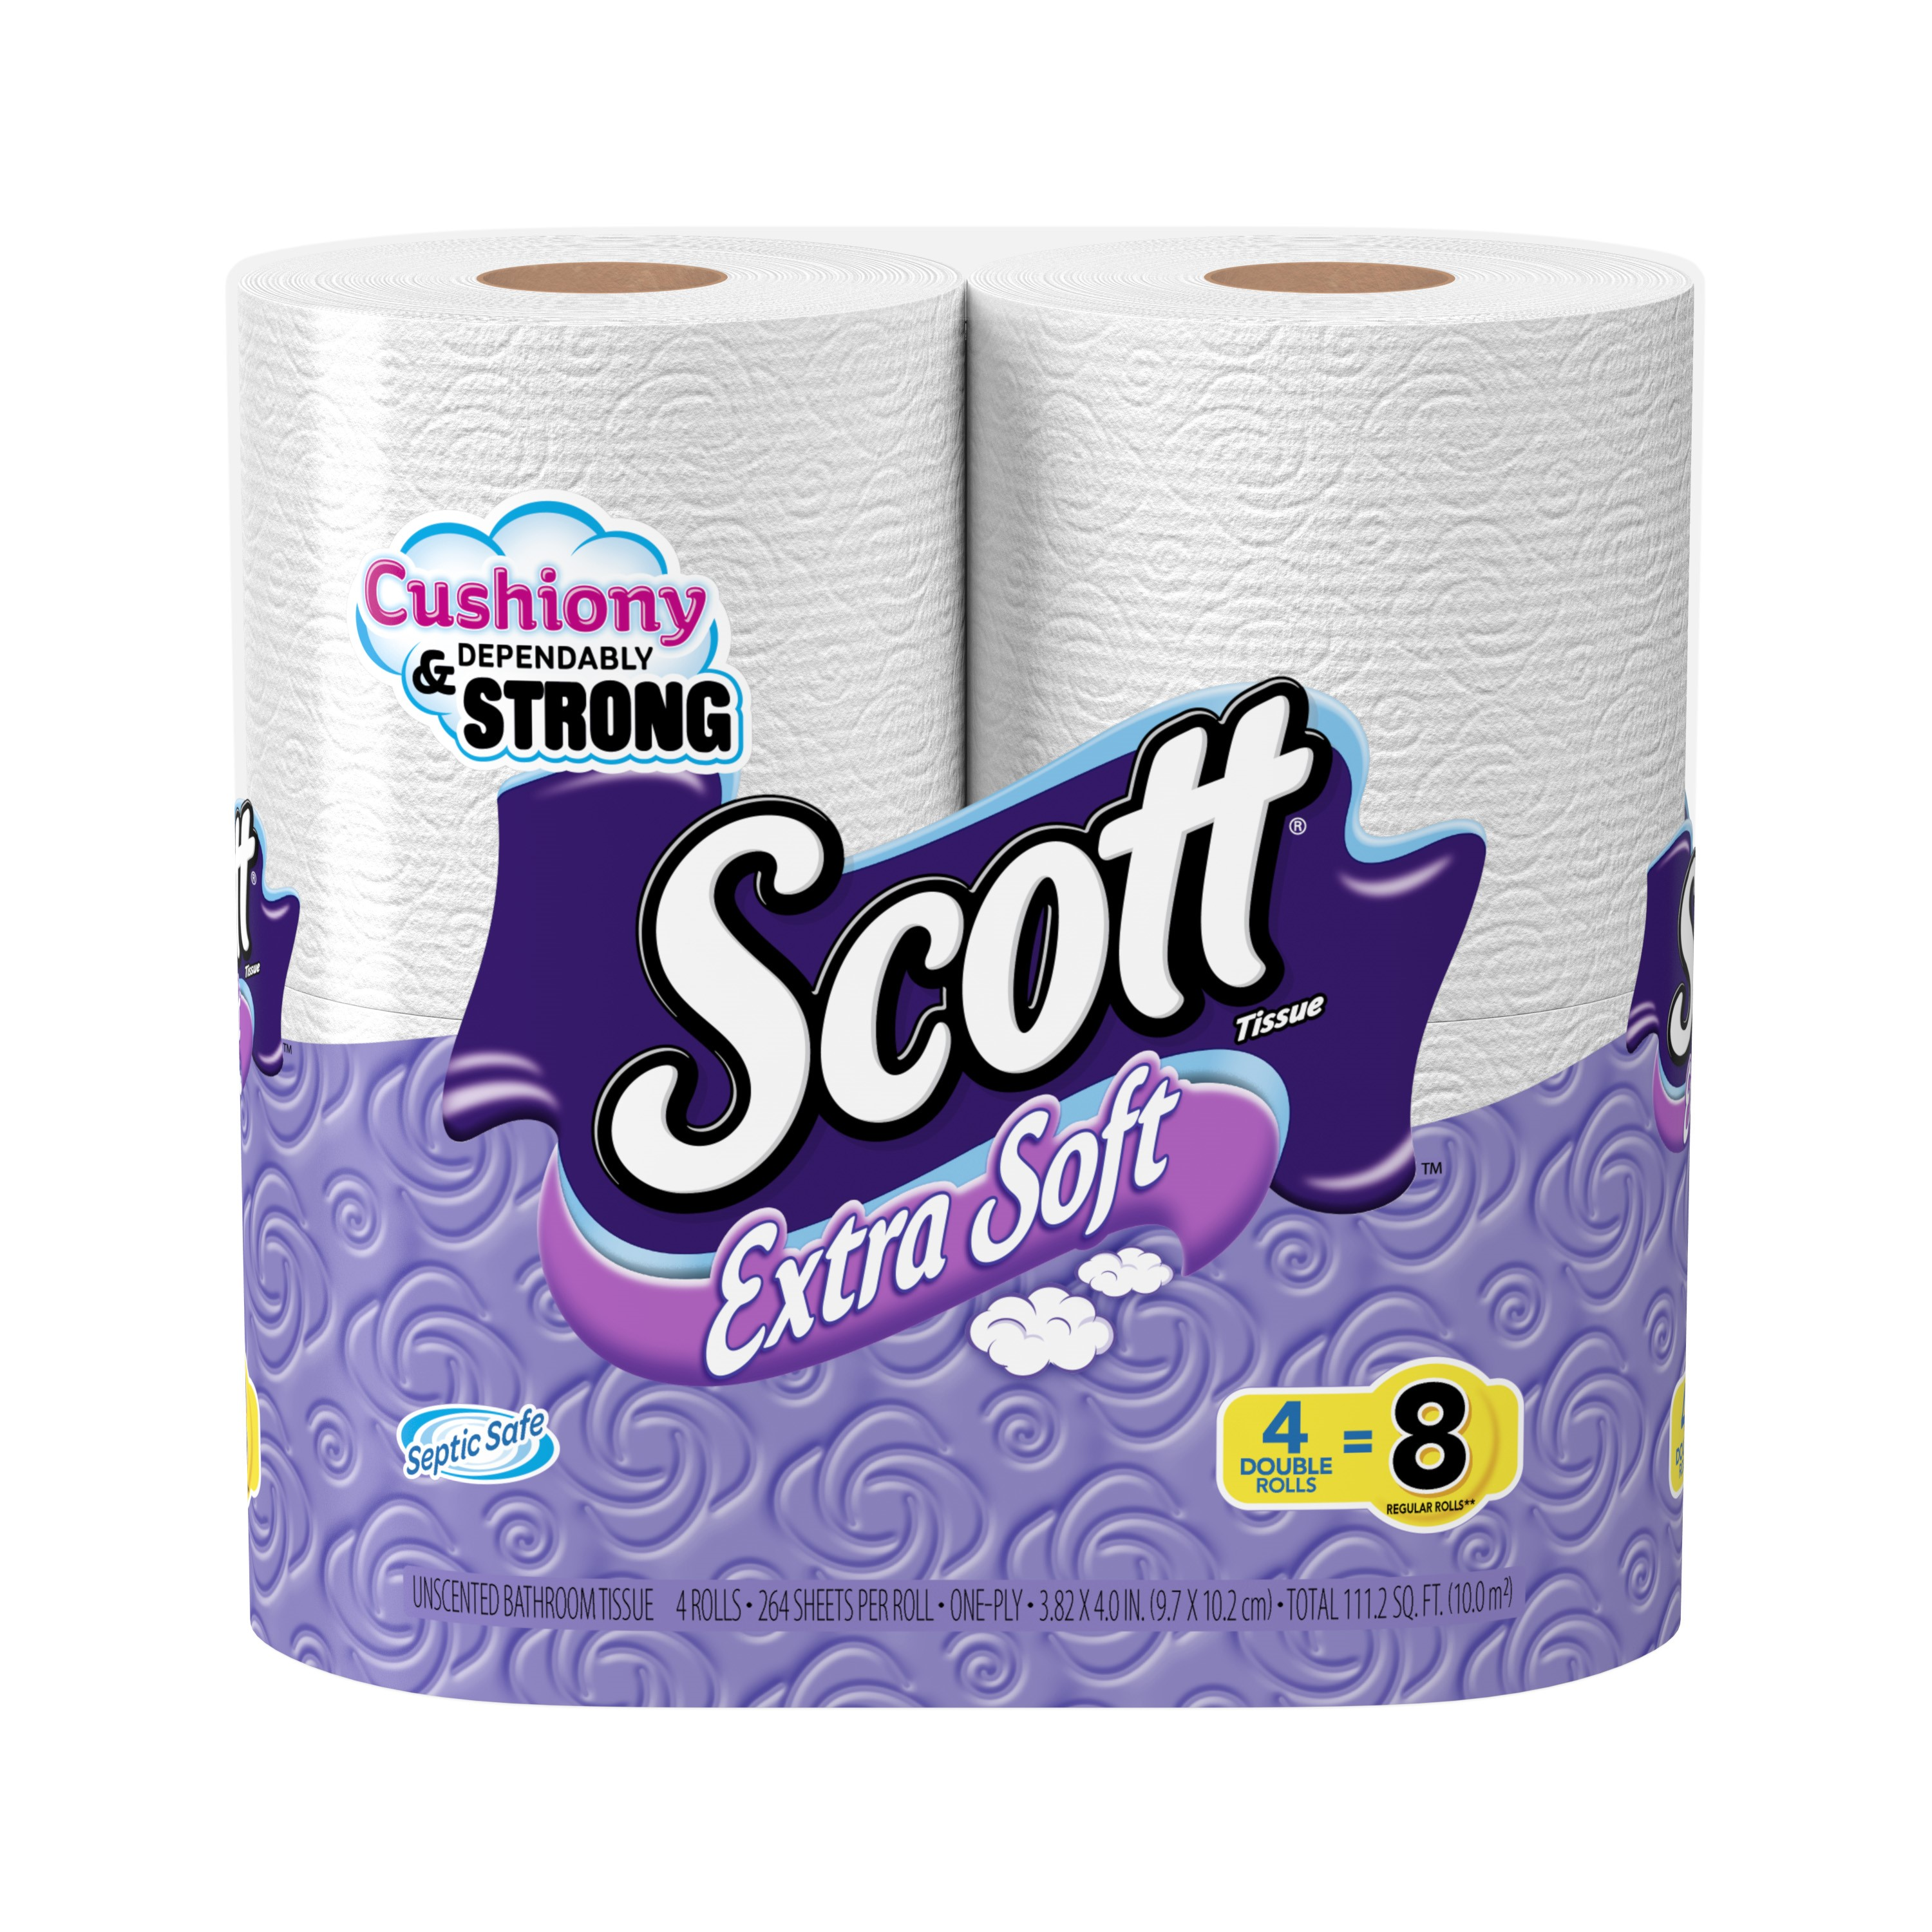 Scott Toilet Paper, Extra Soft, 4 Double Rolls